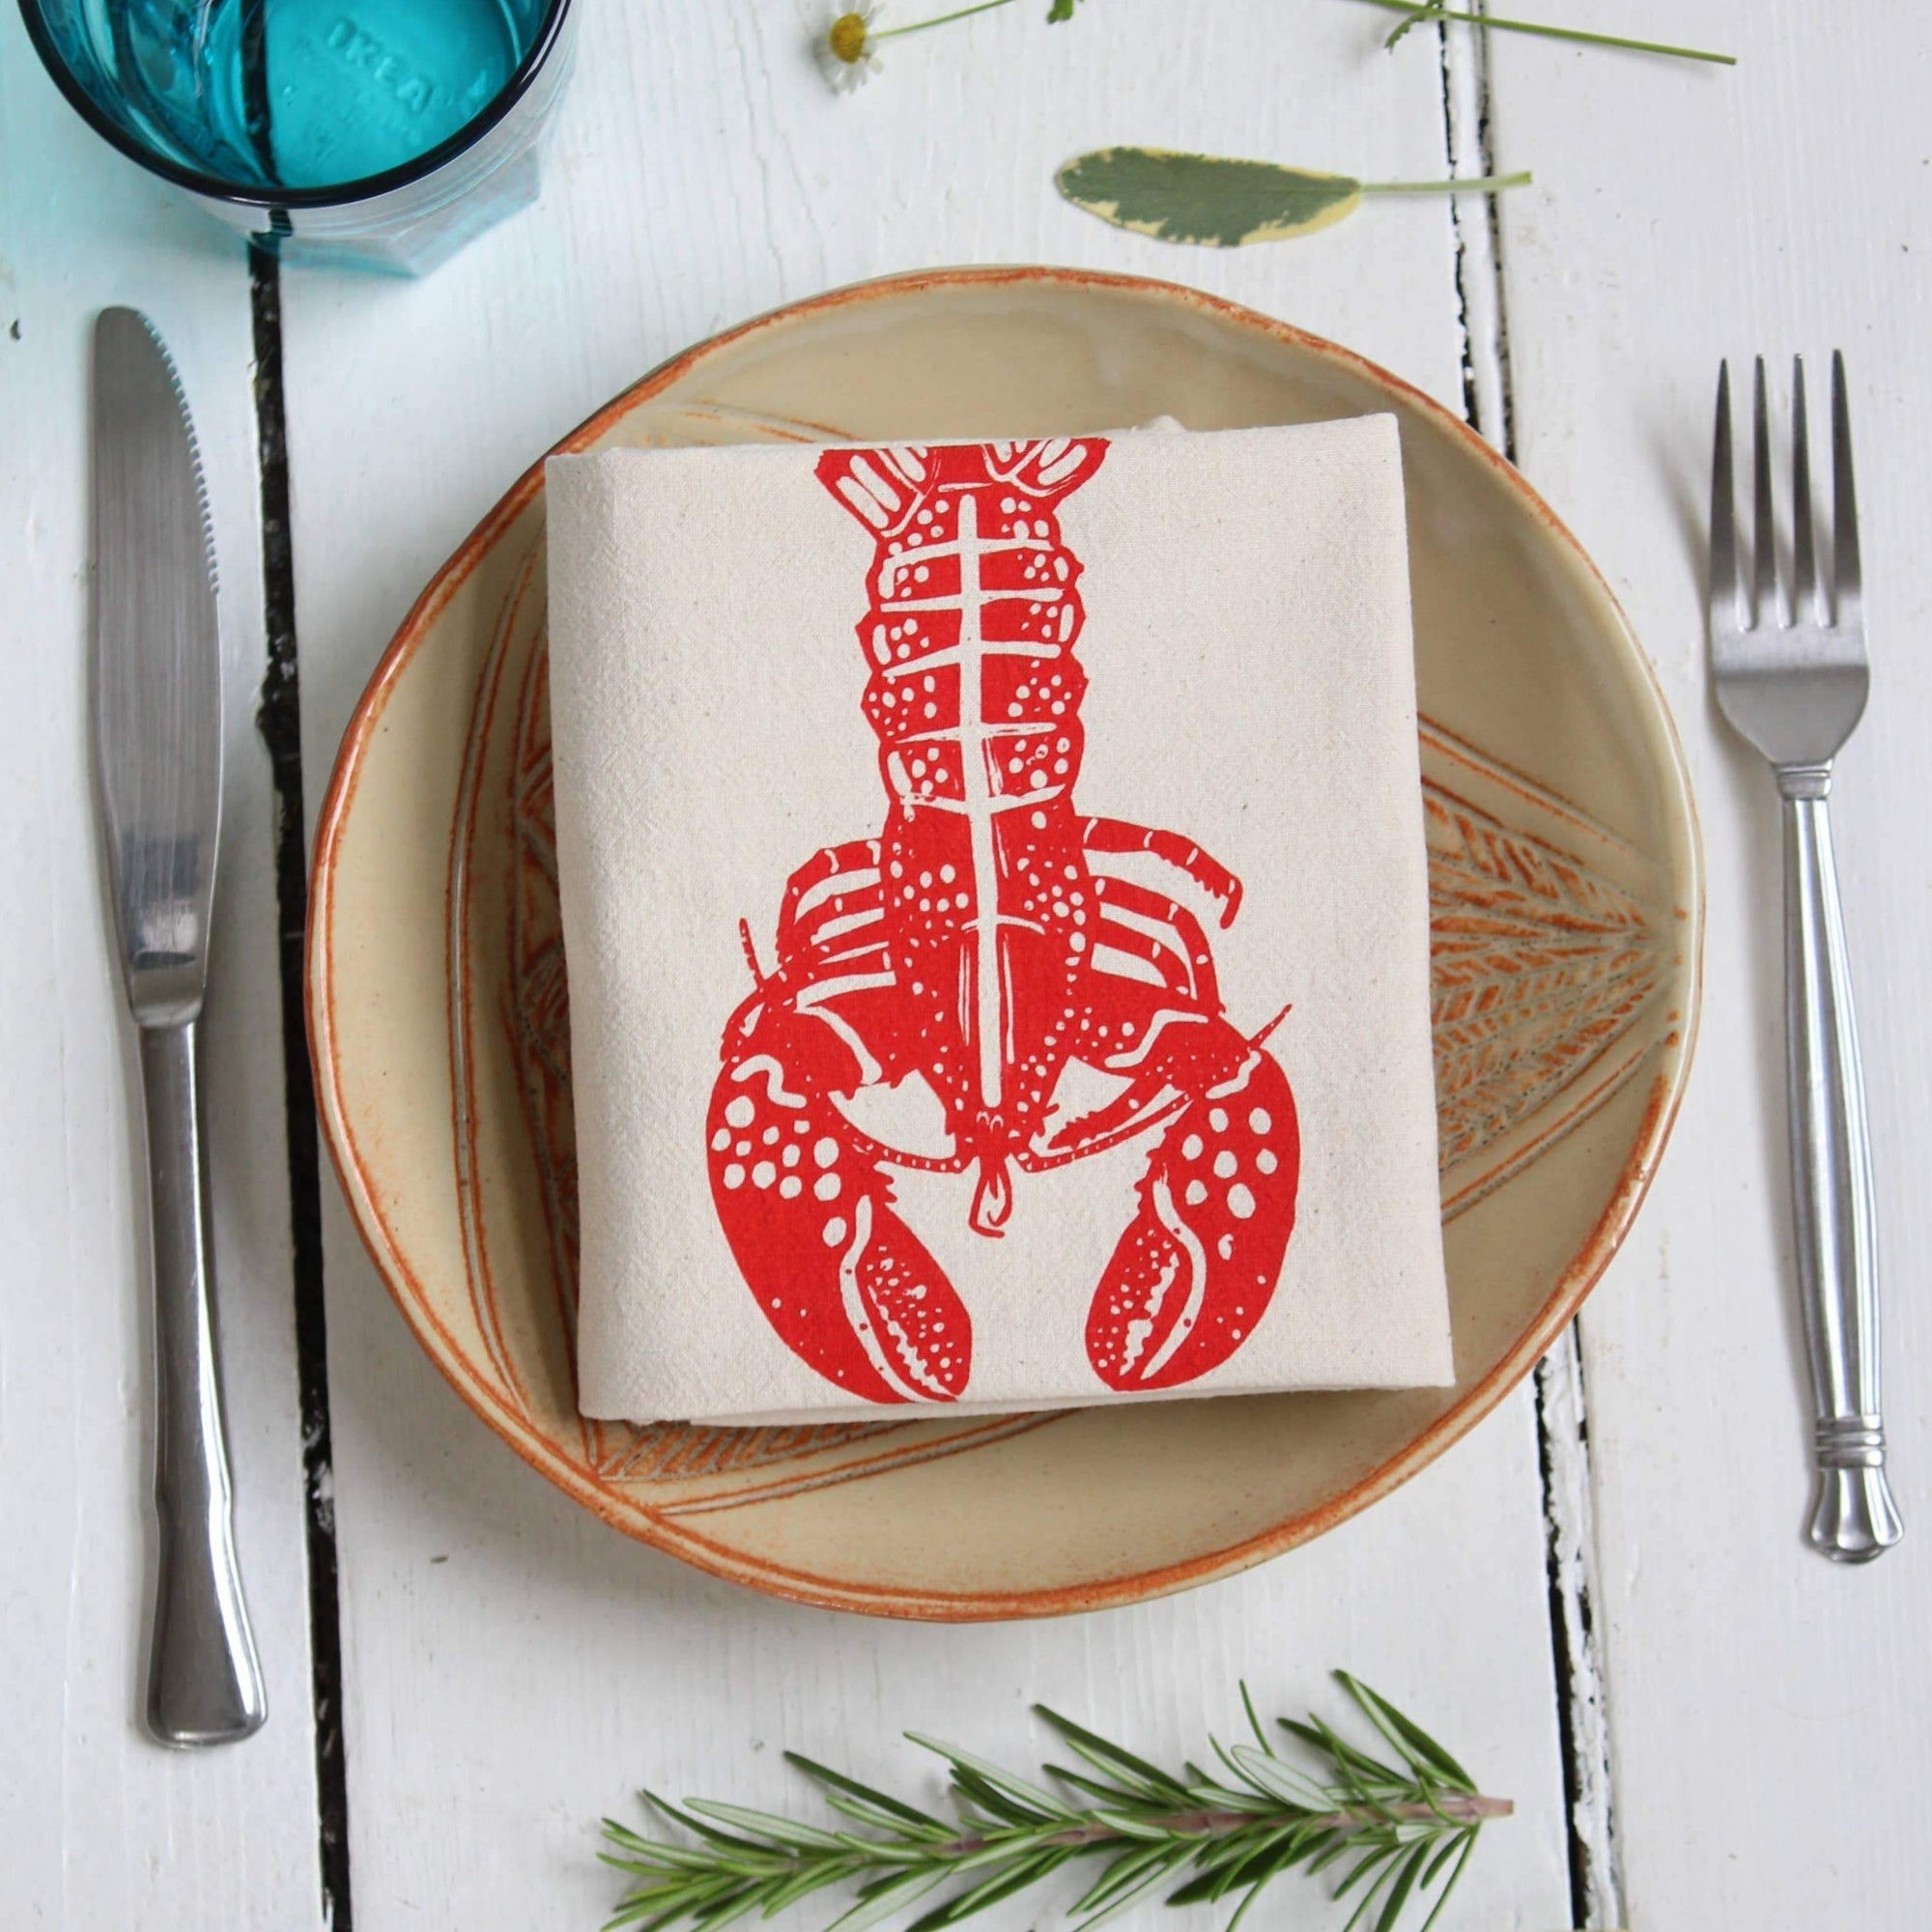 Hearth and Harrow - Set of 4 Organic Lobster Cloth Napkins (Red)